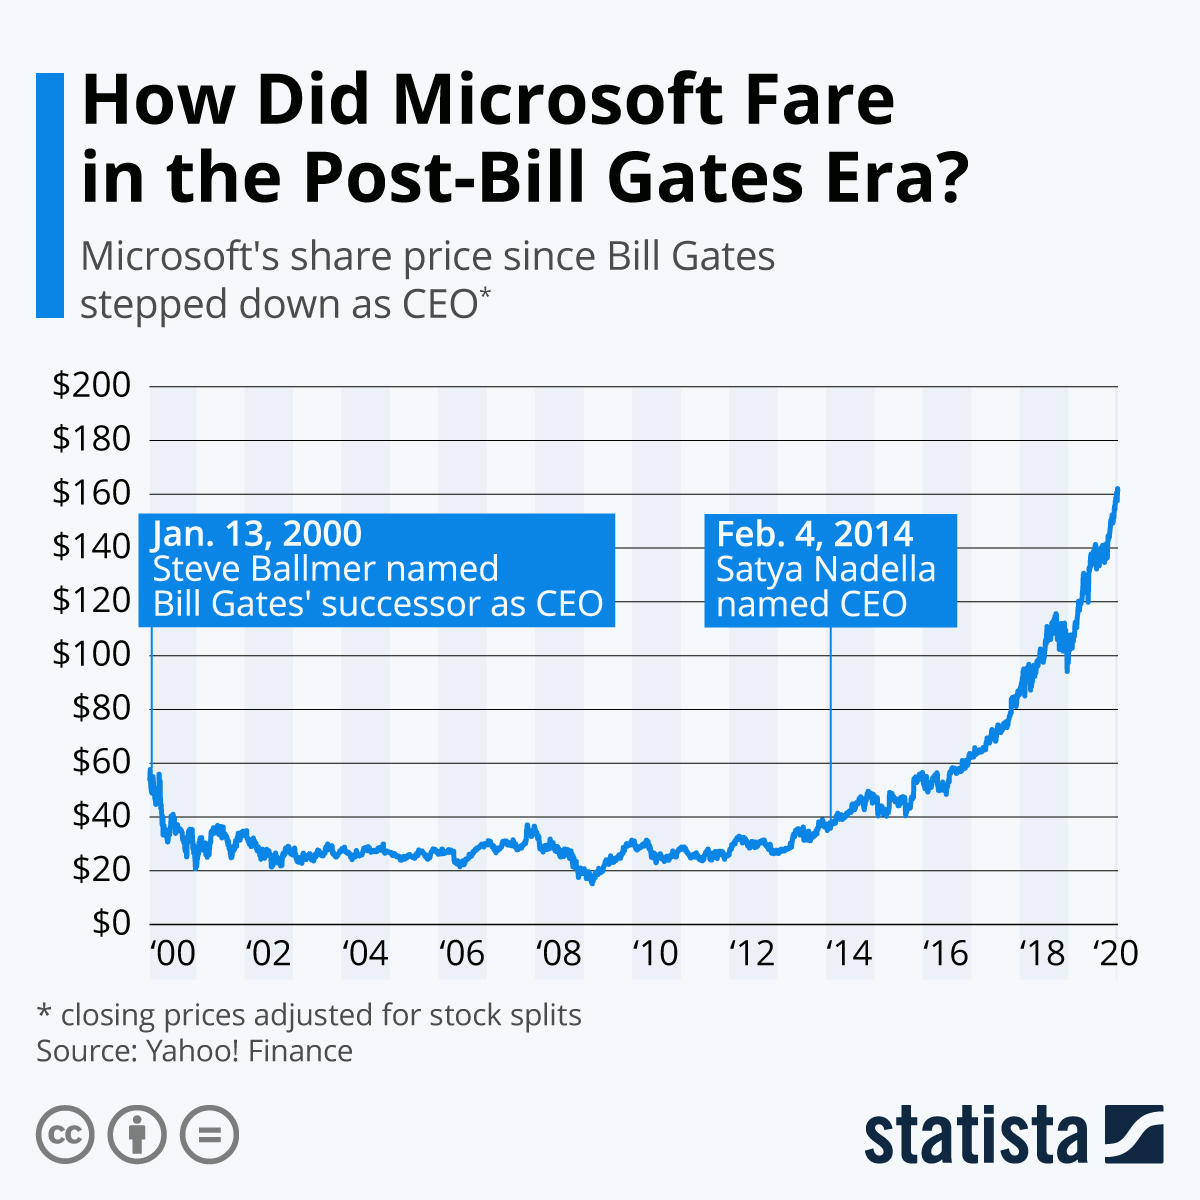 Microsoft's share price since Bill Bates stepped down as CEO